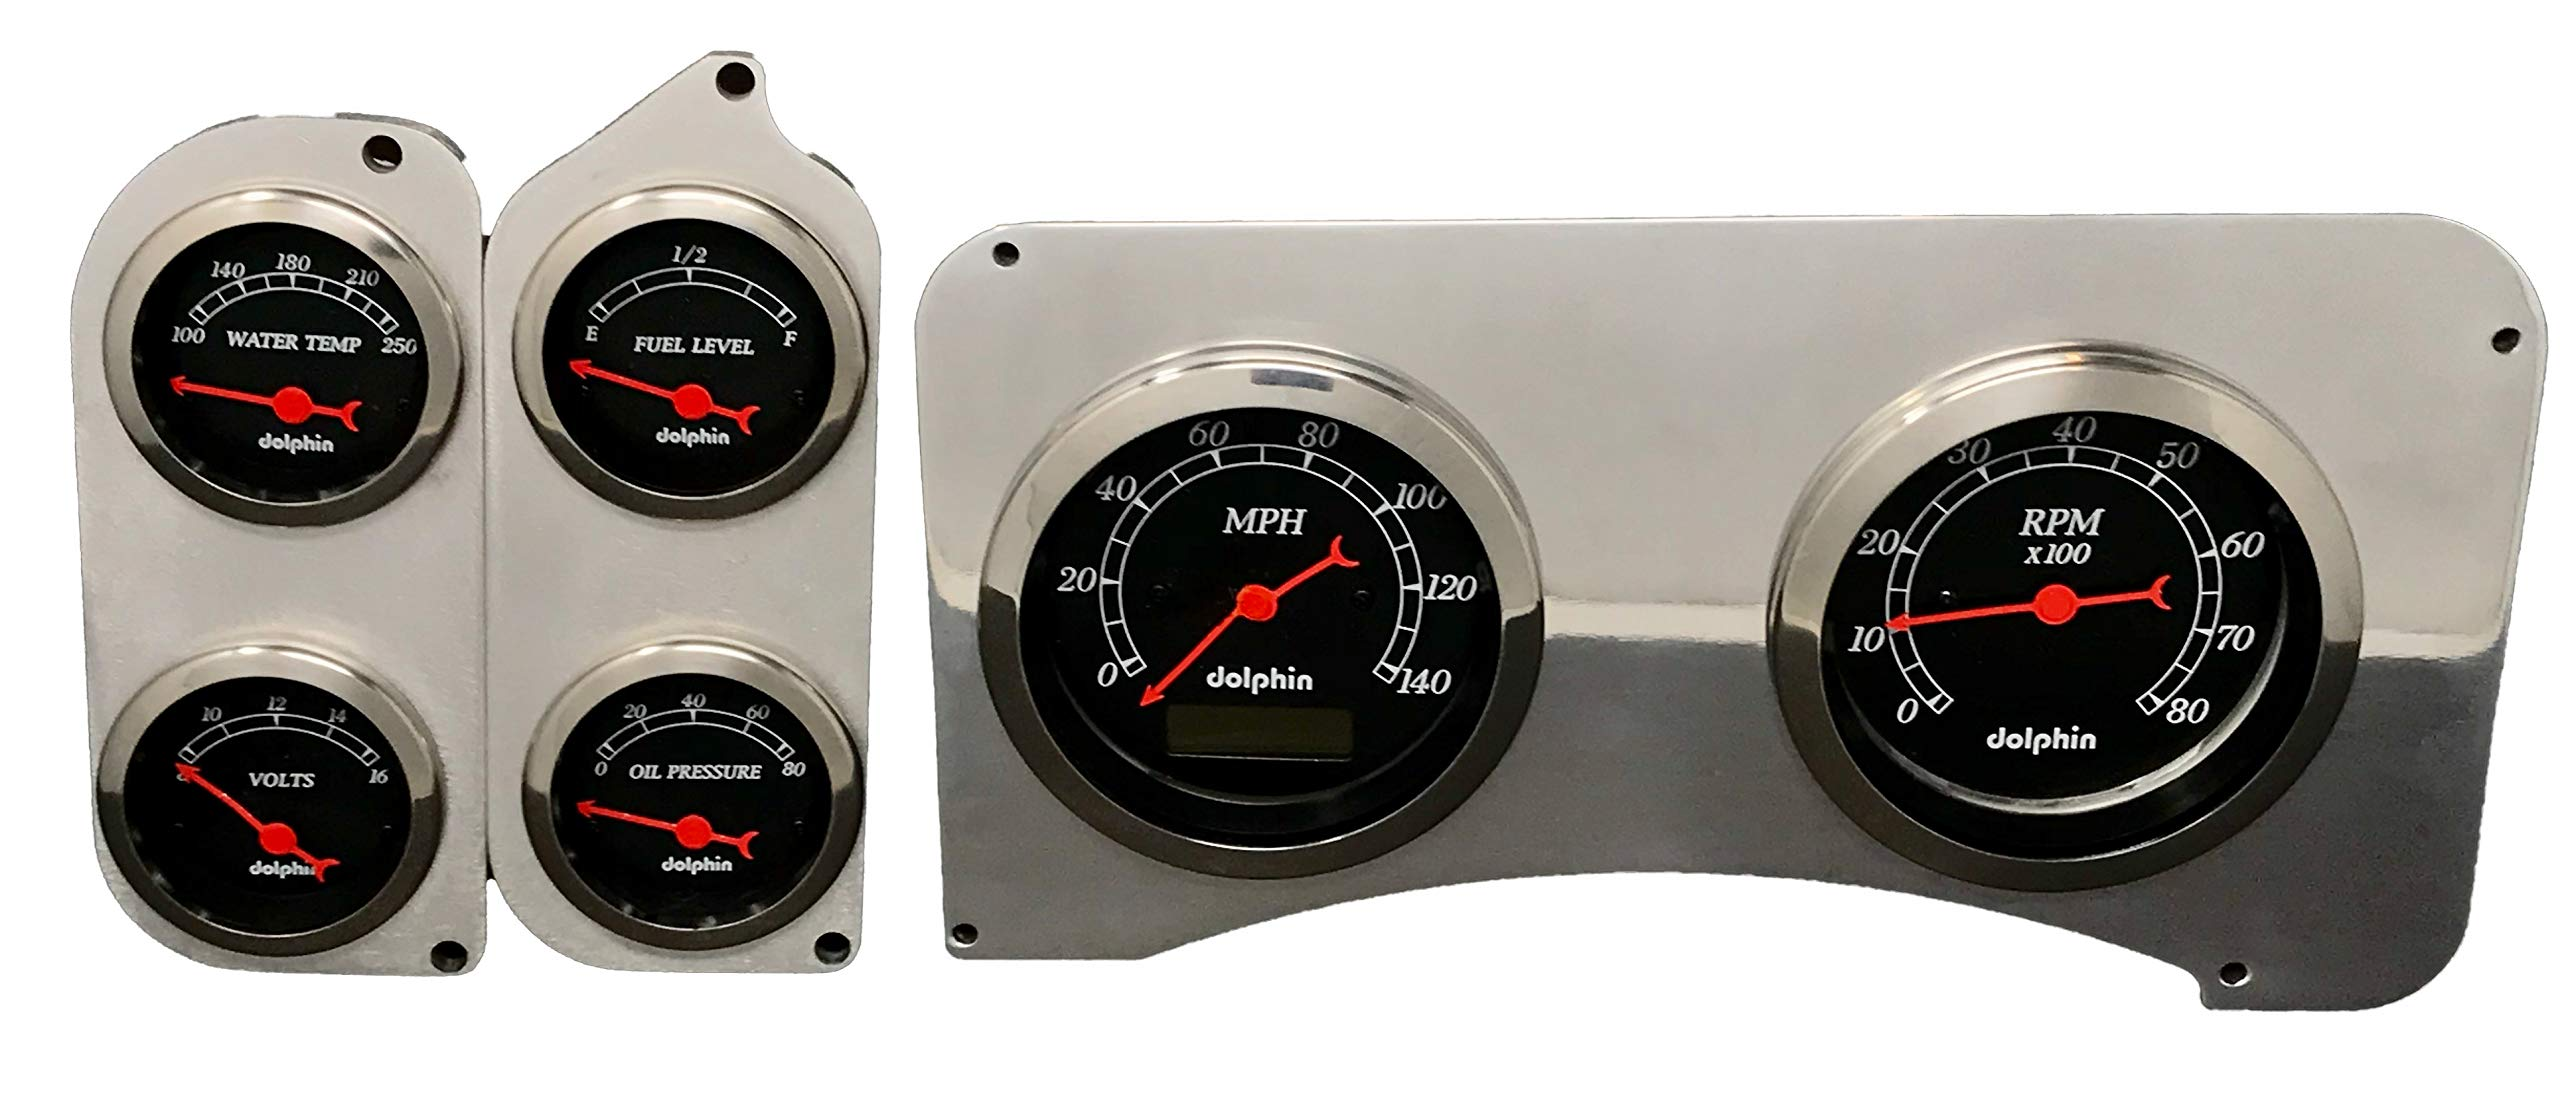 Dolphin Gauges 1973 1974 1975 1976 1977 1978 1979 1980 Chevy Truck 6 Gauge Dash Cluster Panel Set Programmable Black by Dolphin Gauges